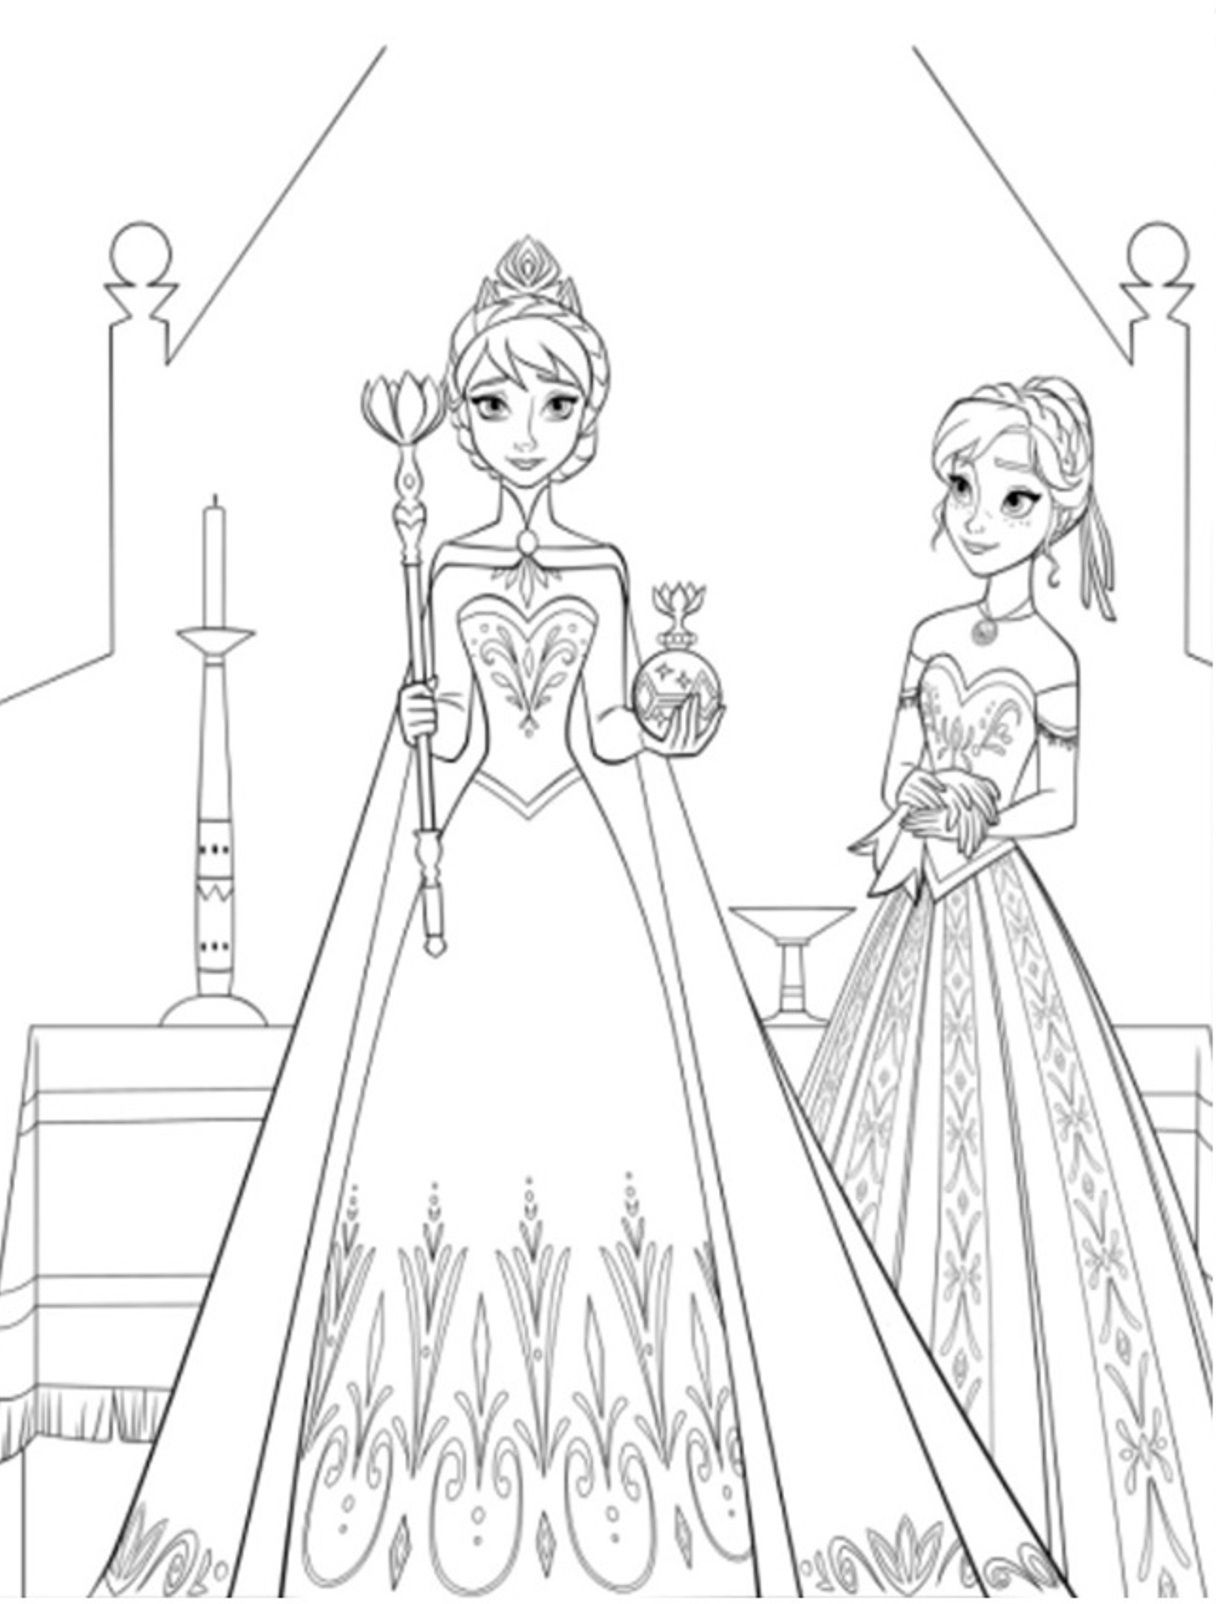 Coloring pages to print of frozen